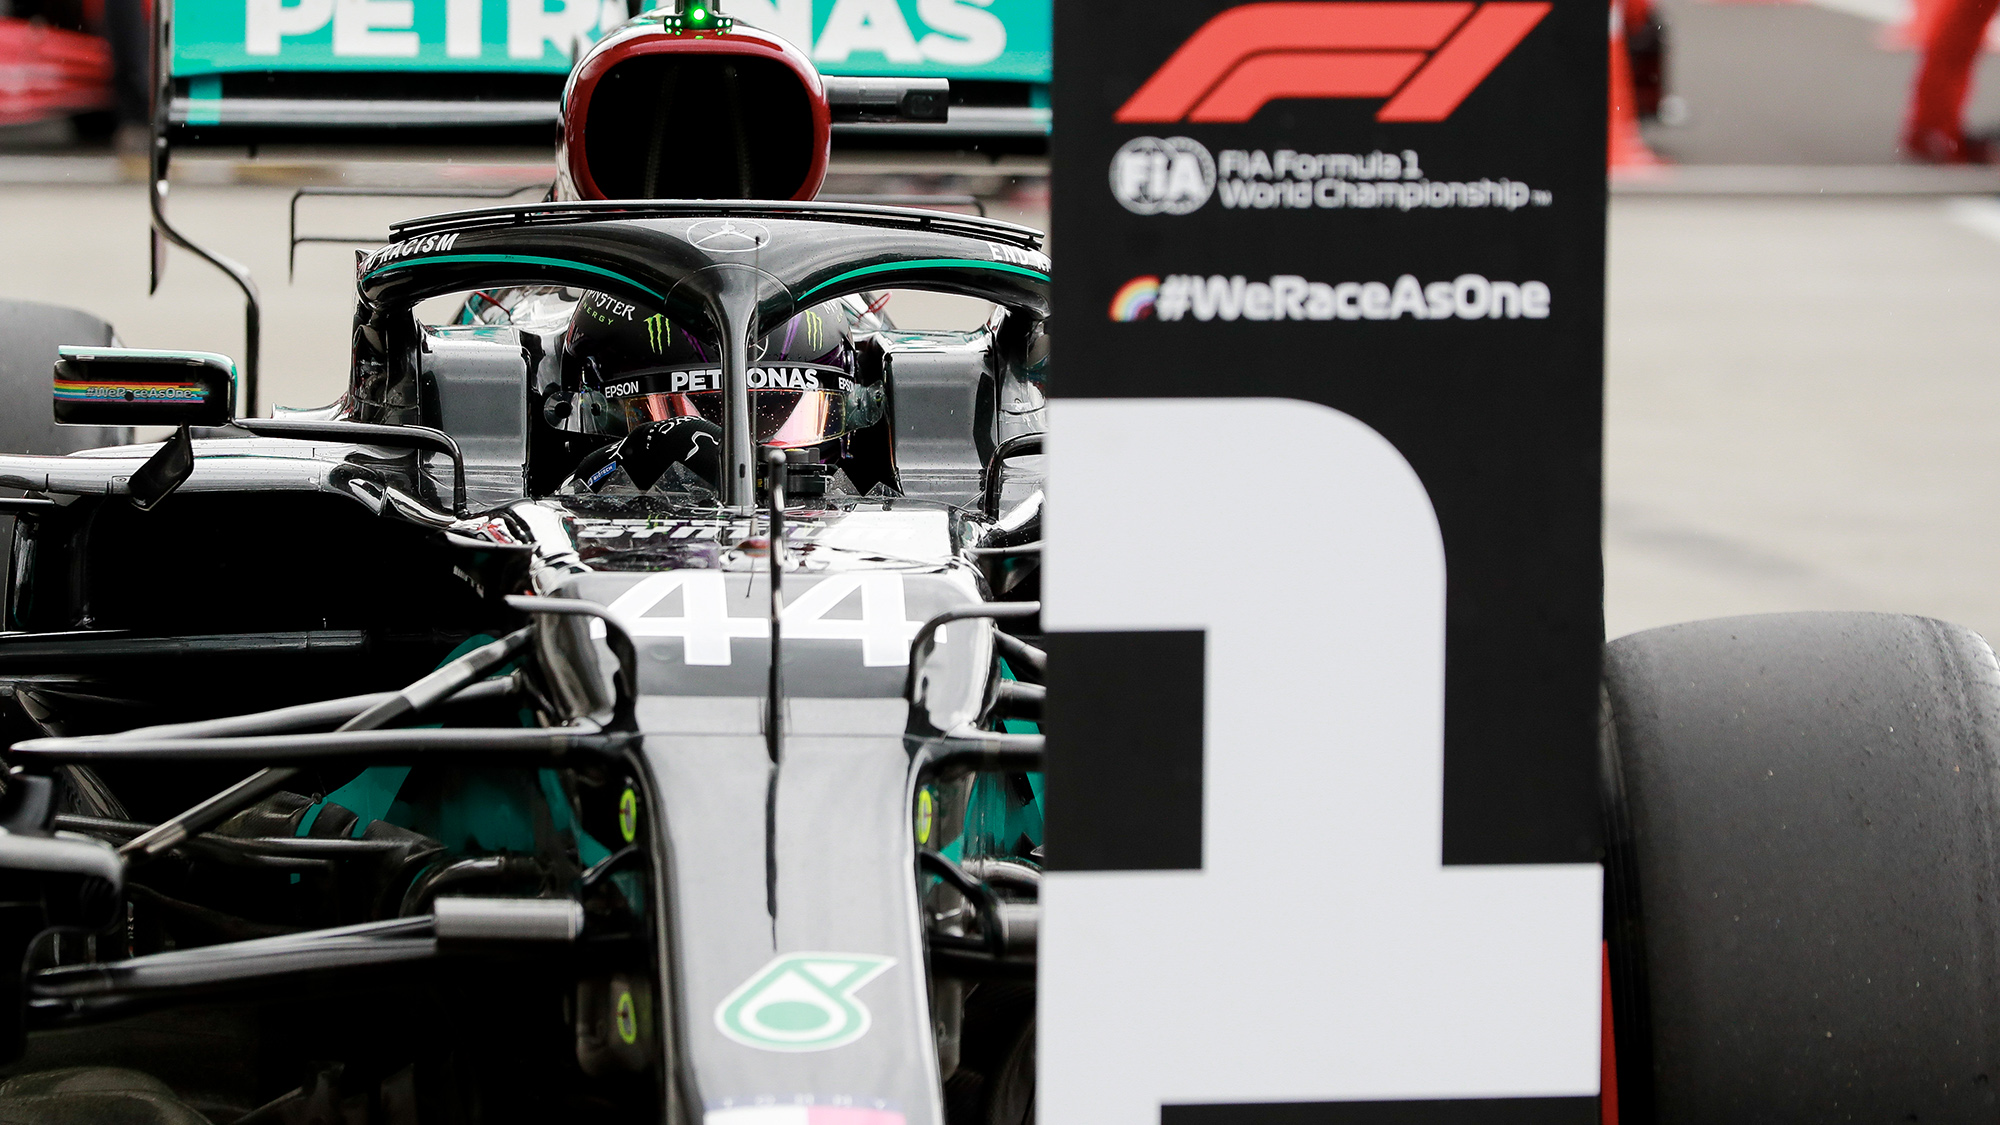 Lewis Hamilton parks his Mercedes in front of the number won board after securing pole at the 2020 F1 Hungarian Grand Prix